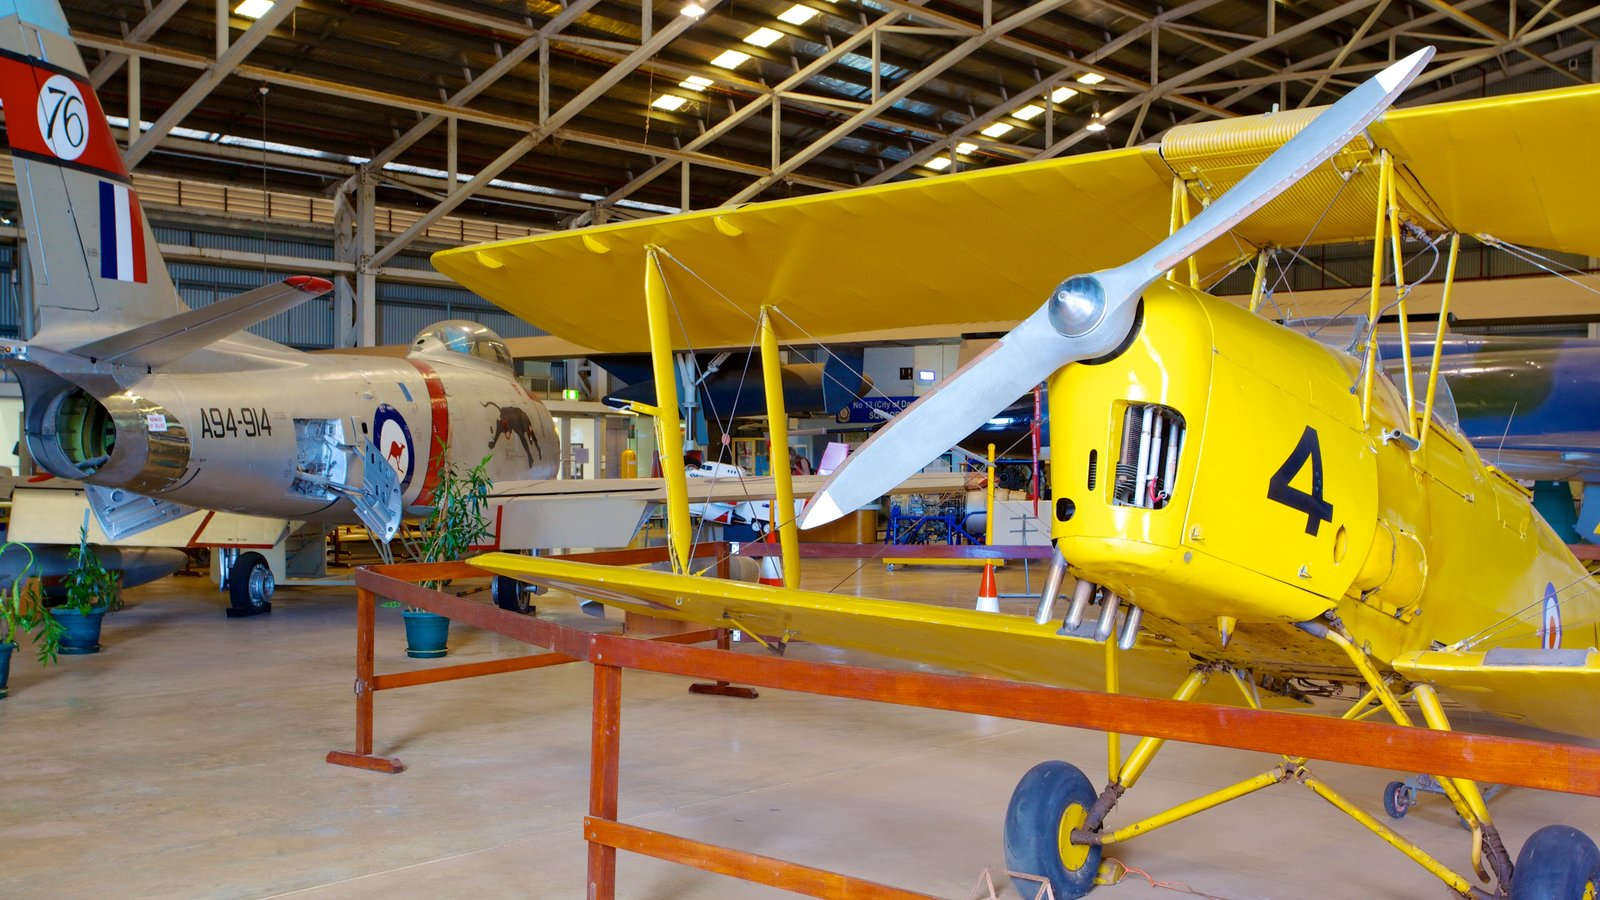 Australian Aviation Heritage Centre featuring aircraft and interior views